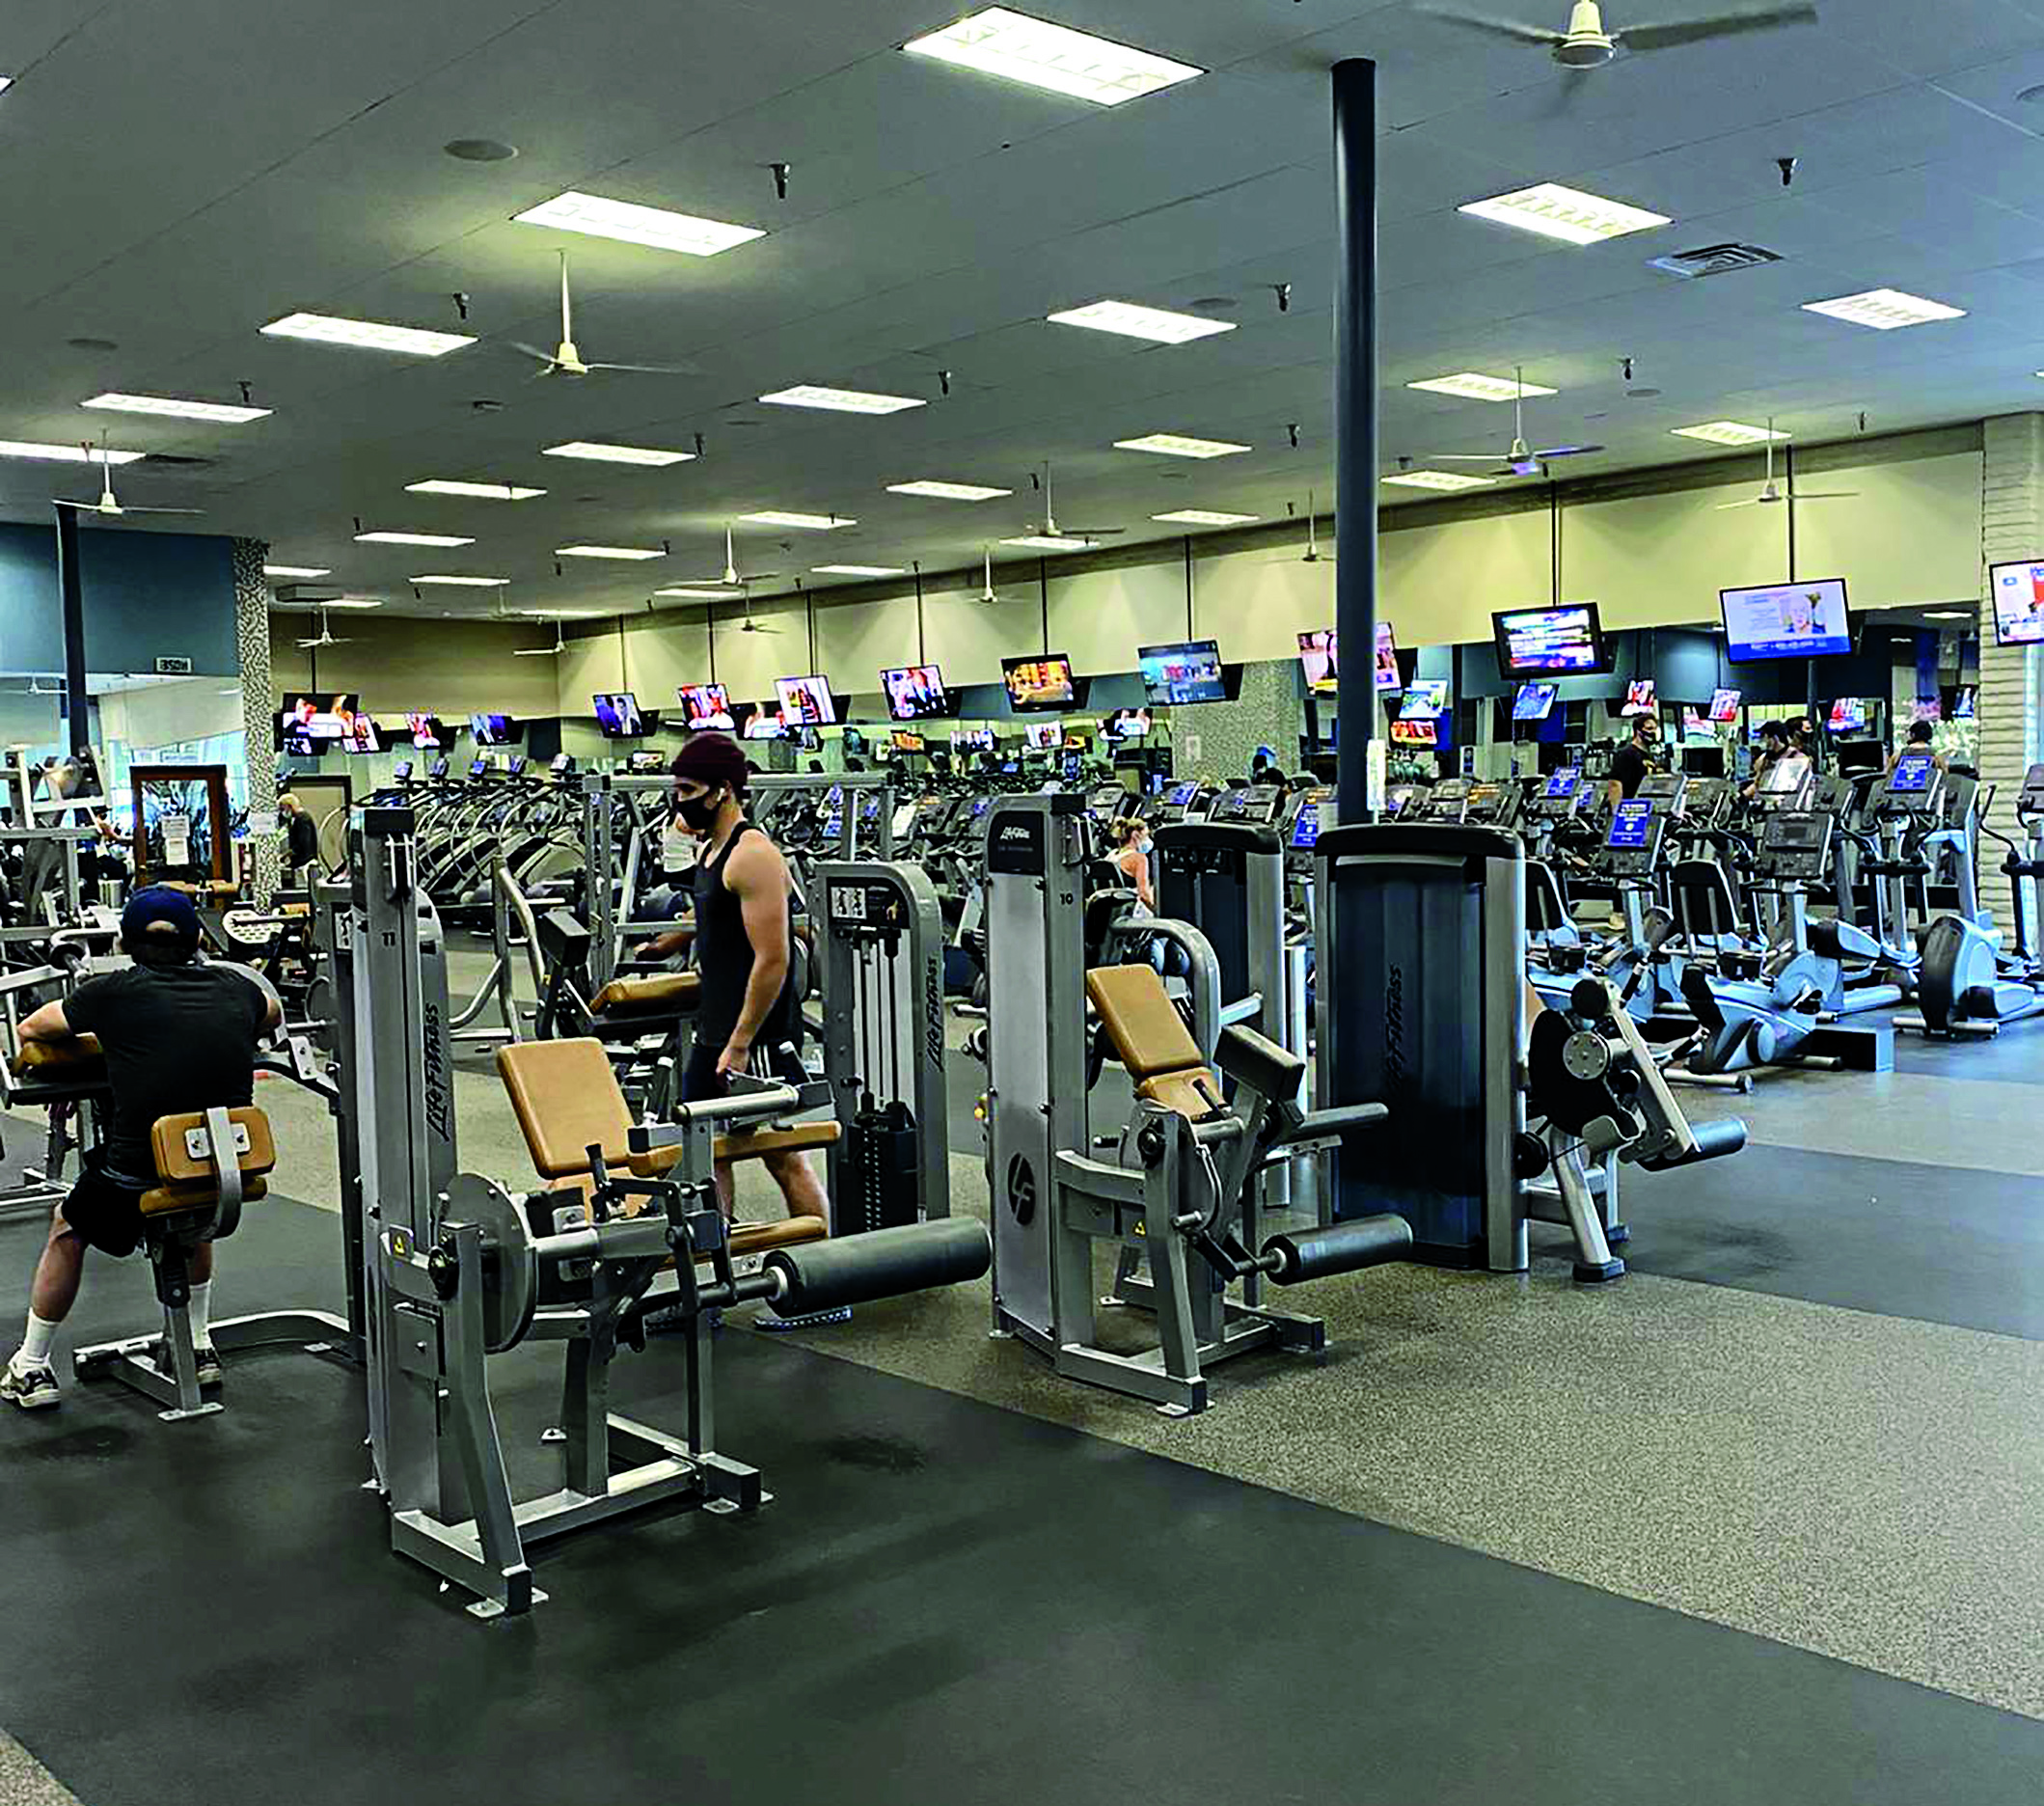 Opinion Fitness 19 Must Comply With County Regulations Hs Insider